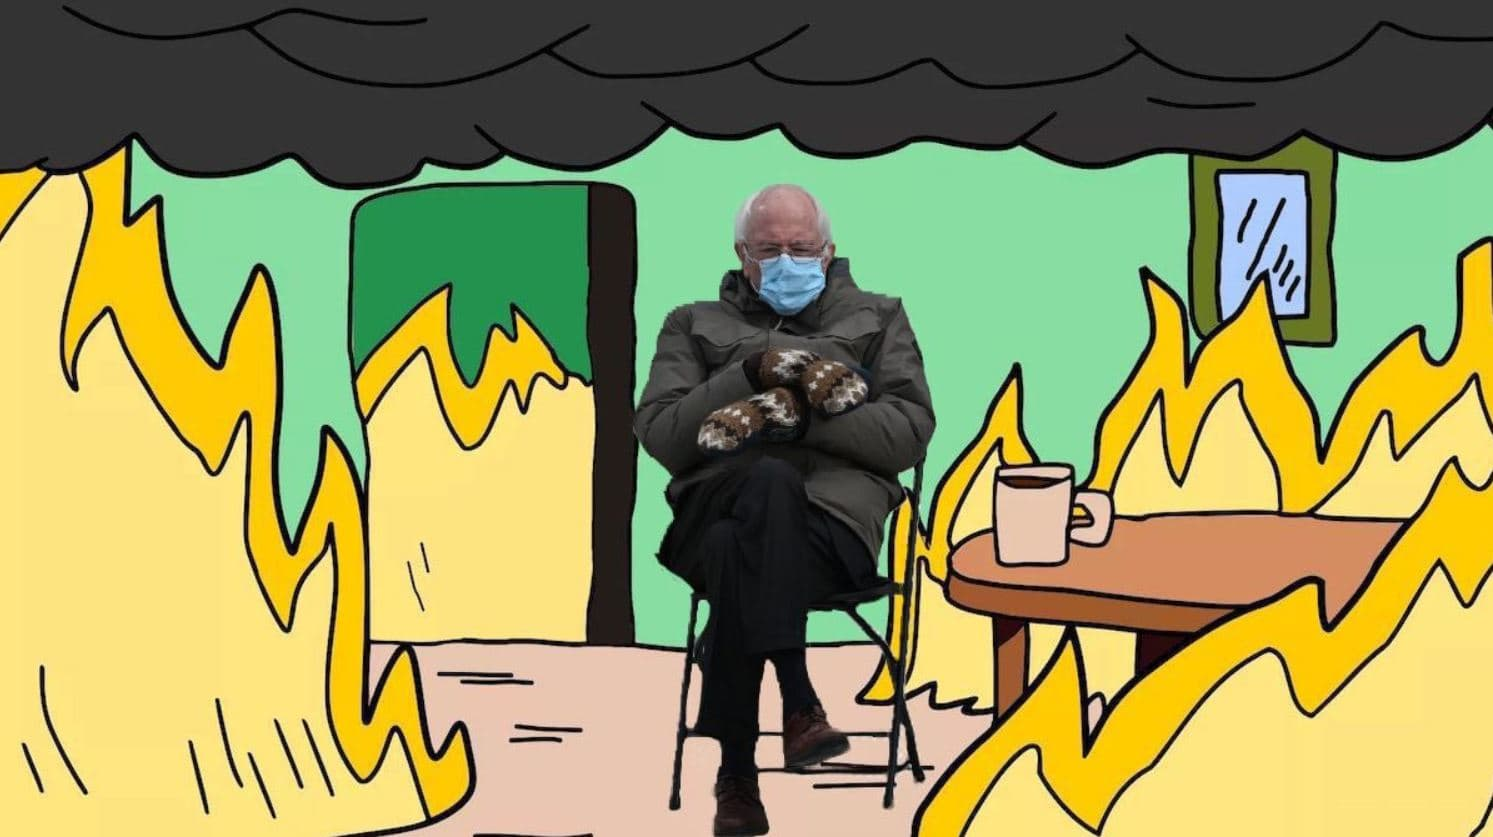 Bernie Sitting Memes - Surrounded by fire